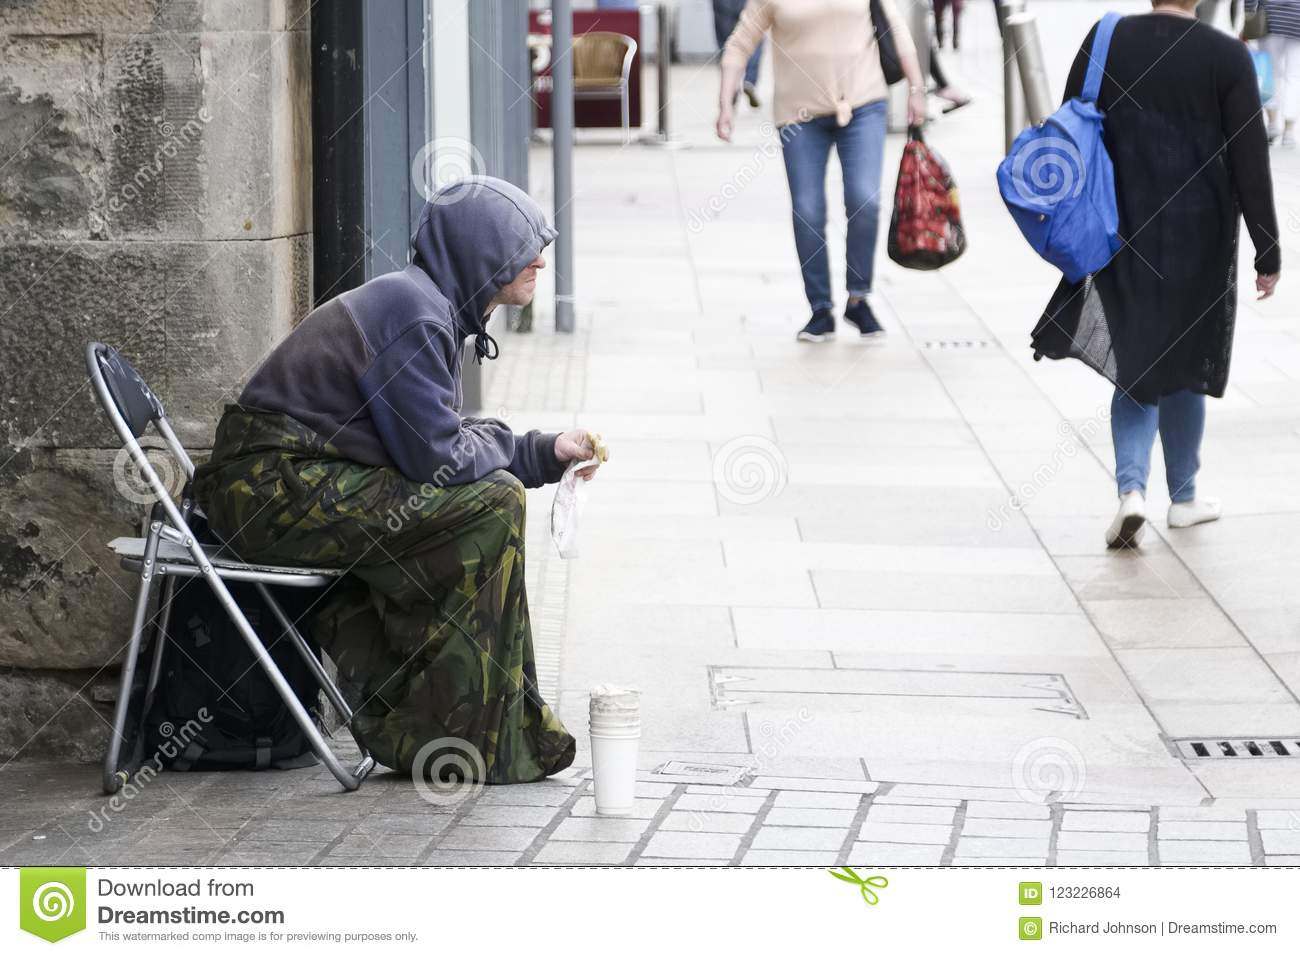 Homeless beggar sat on busy street wearing a hoodie with cup for change in the UK with shoppers in the background